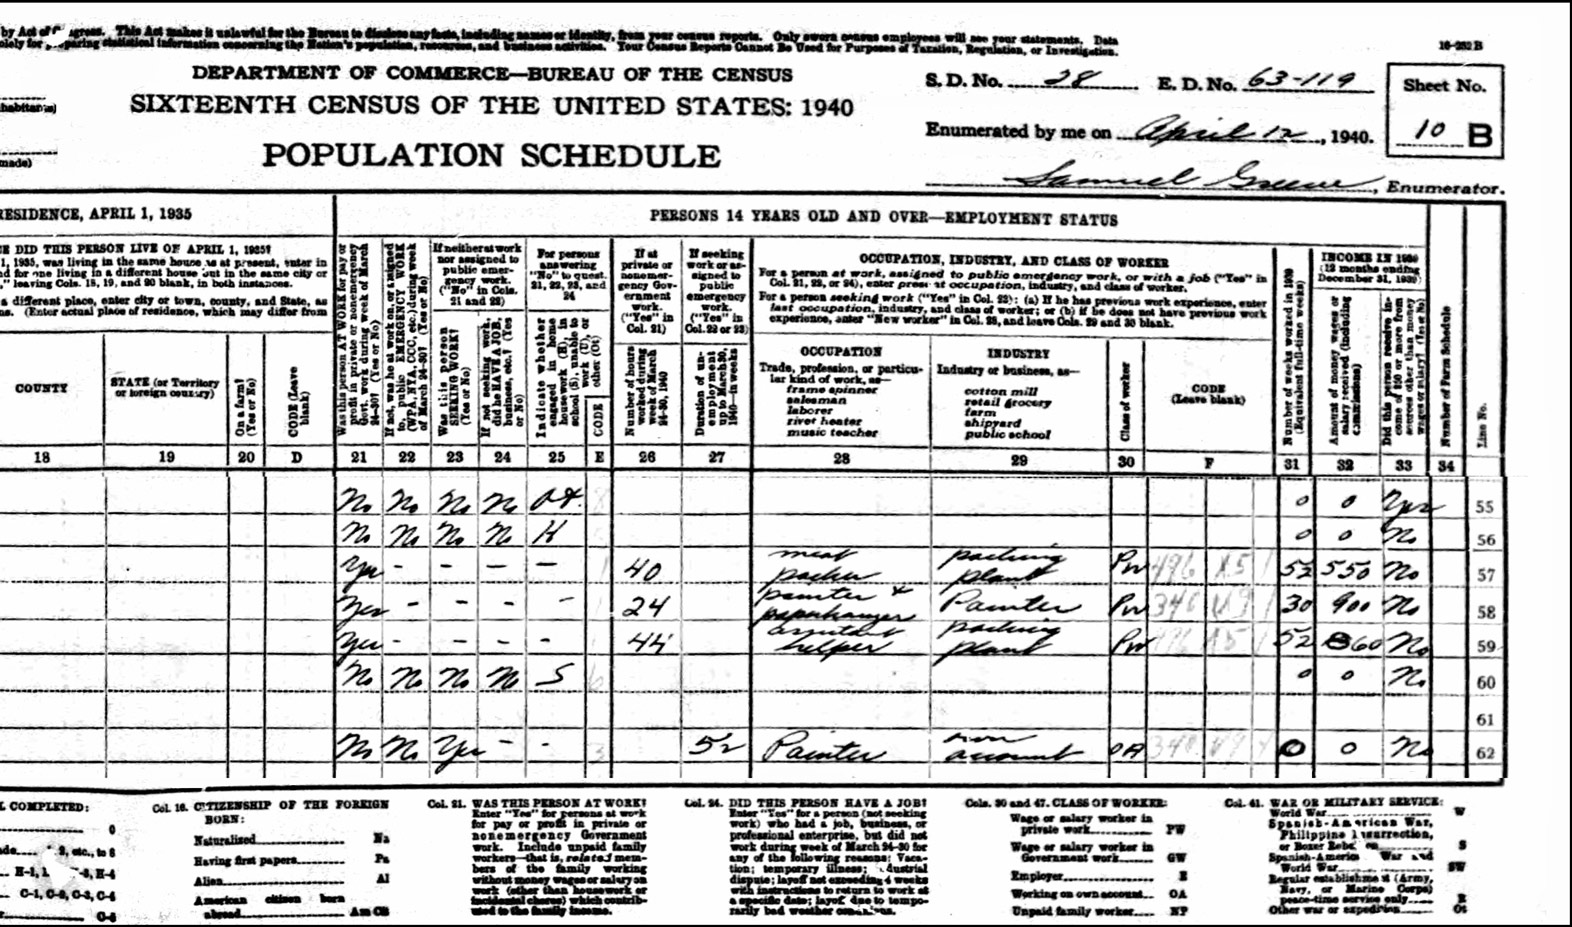 1940 US Federal Census Record for the Robert Schroll Family (Right)